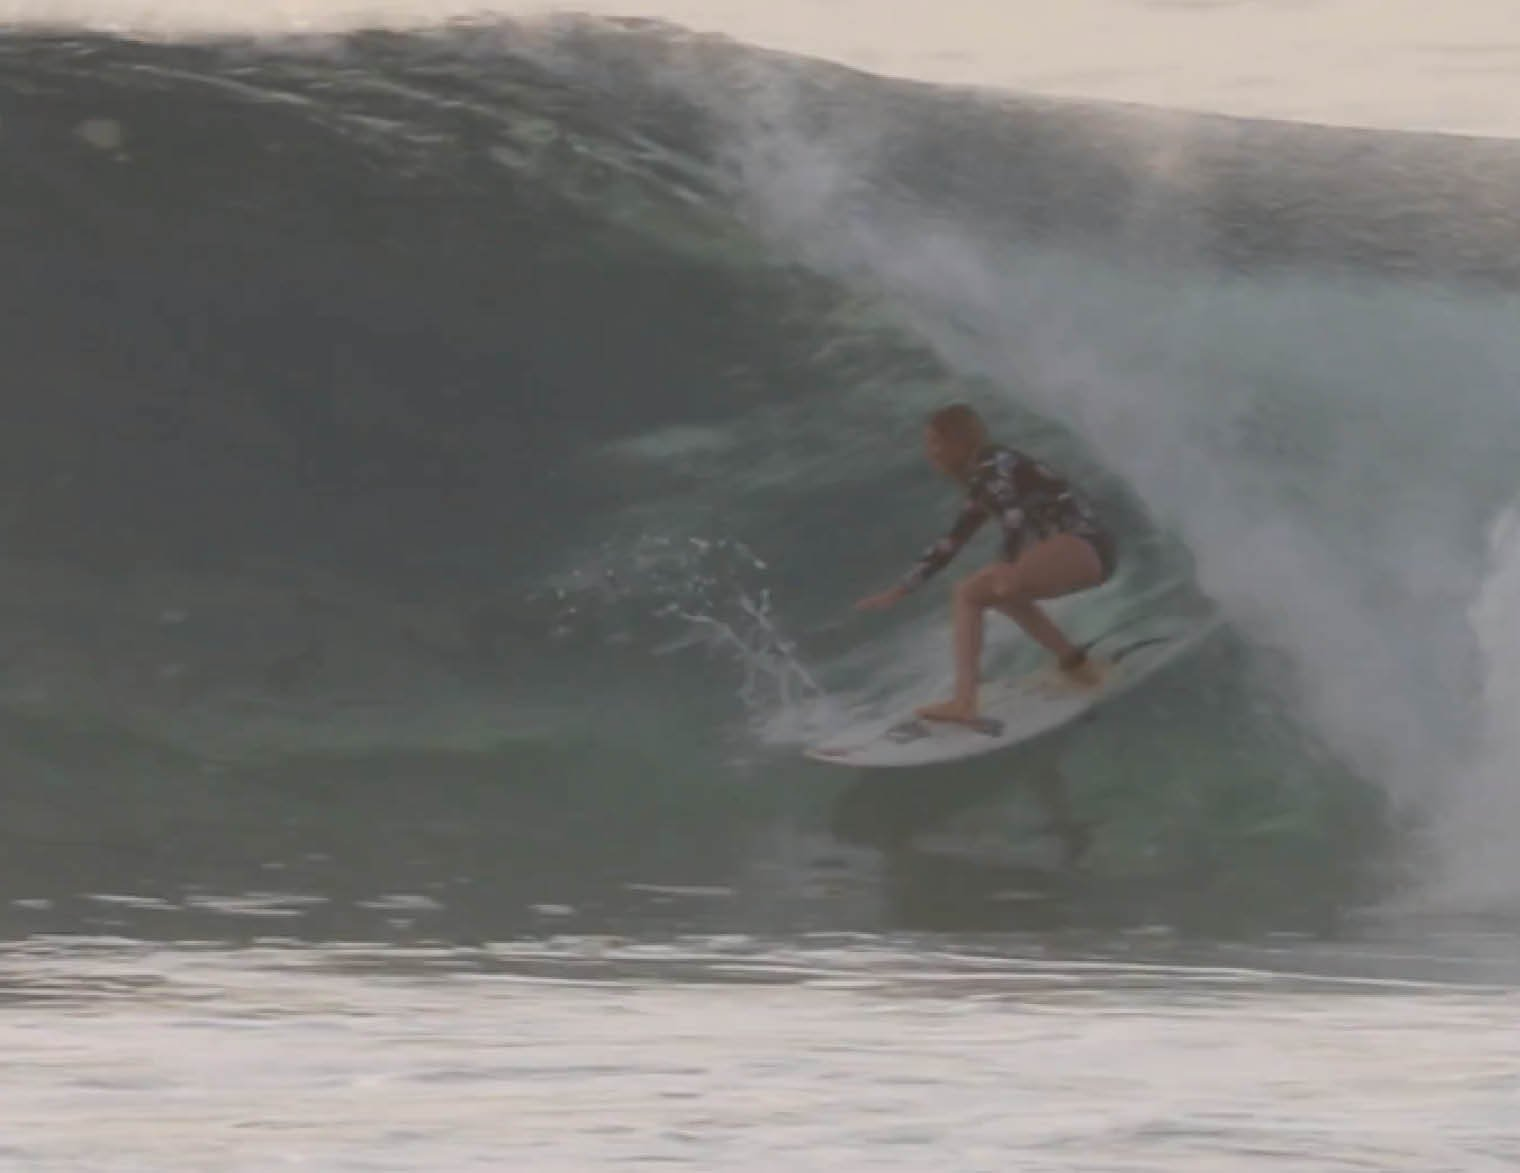 WATCH: CAITY AND TIMO SIMMERS RIPPING IN MEXICO